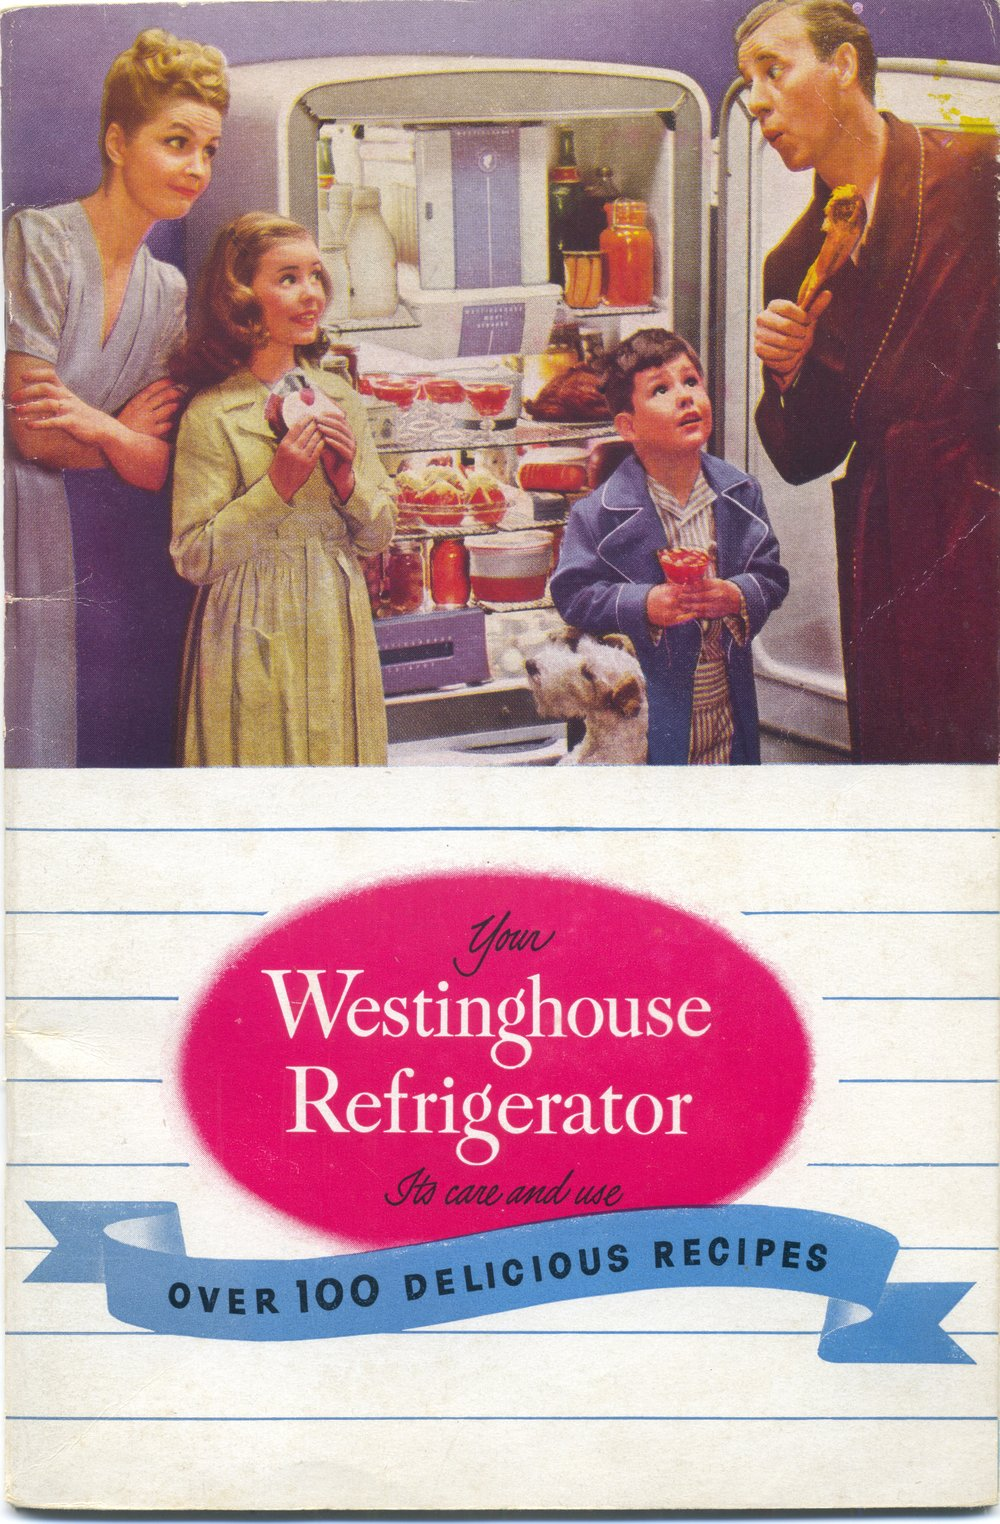 An undated Westinghouse refrigerator booklet